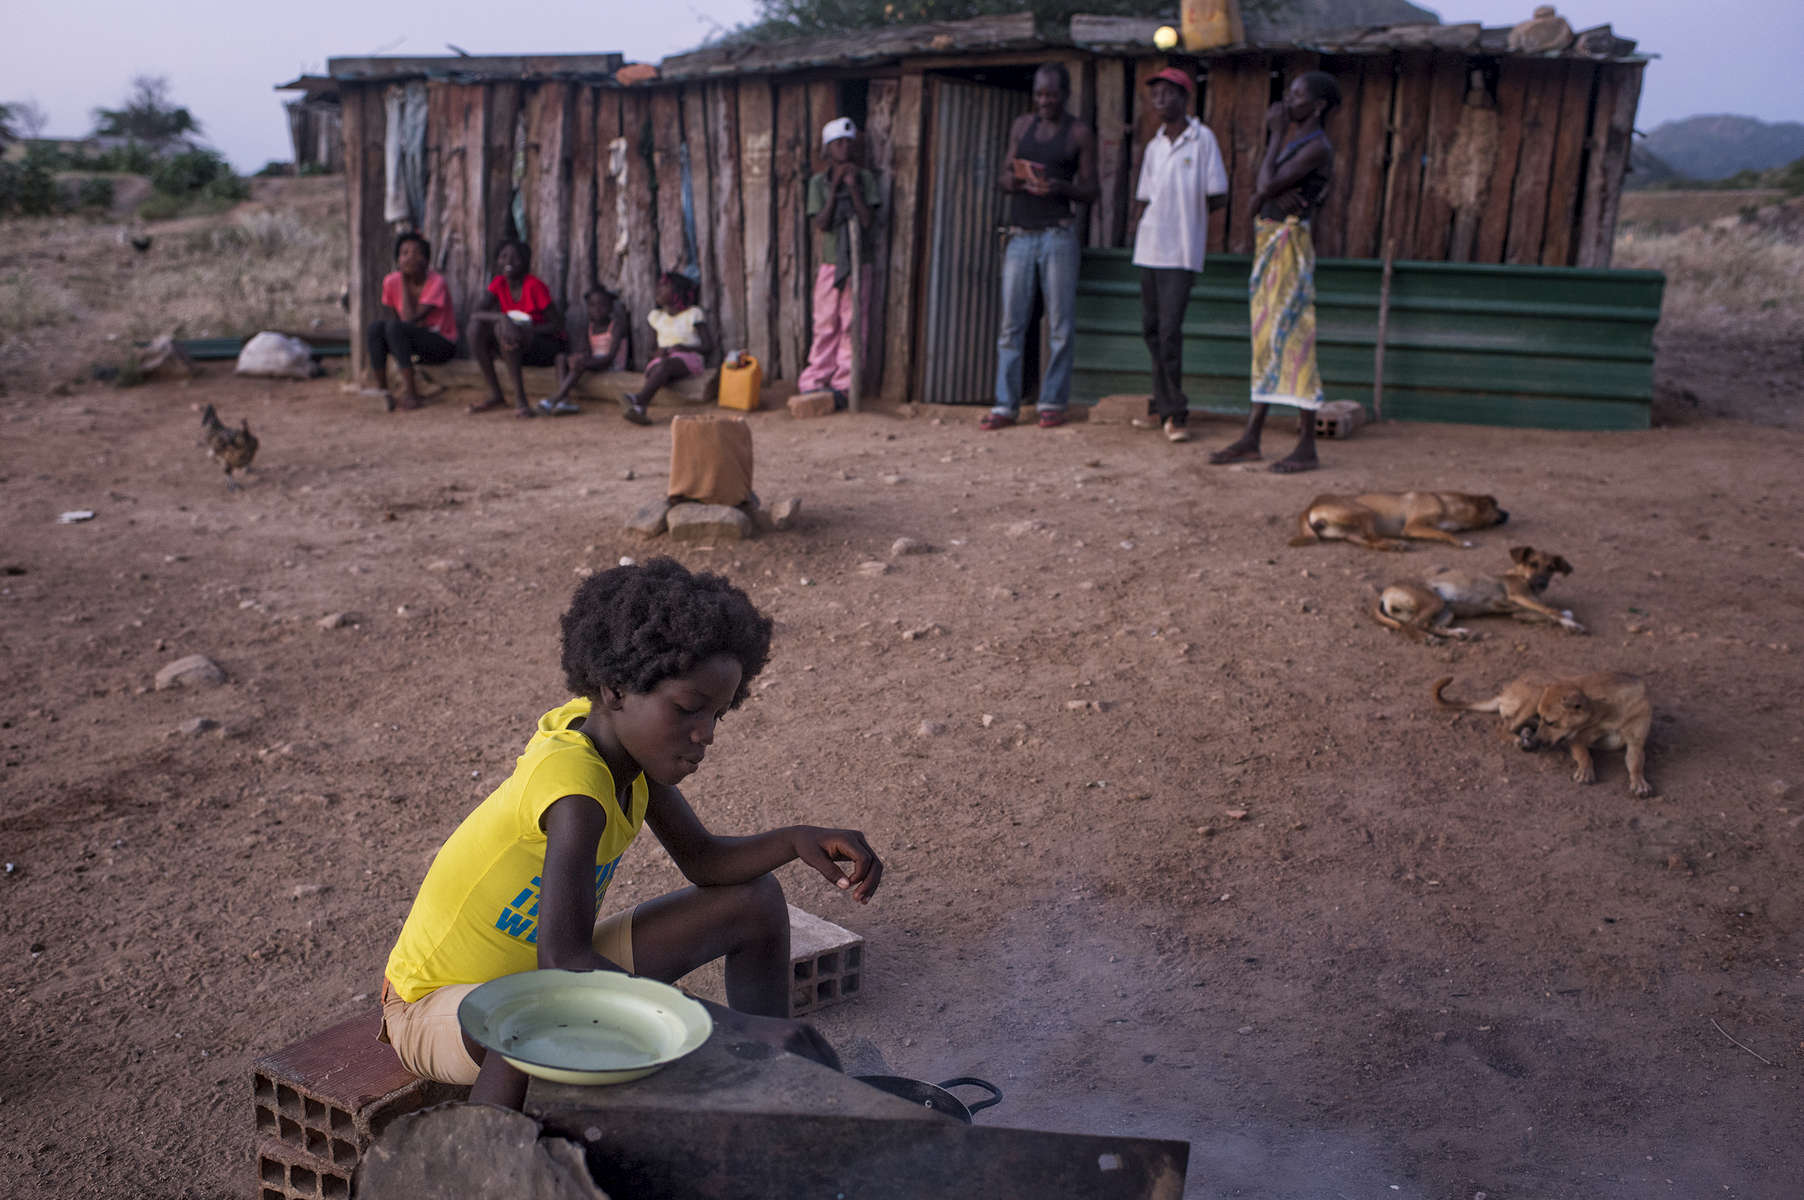 May 6, 2018: KANENGUERERE, ANGOLA - Eleven year-old Regina helps to prepare dinner for her family in front of their home in Kanenguerere Village. The family moved into Kanenguerere village recently so that the children could go to school, and they have a small plot of land by the river where they grow a few vegetables.  The girls, especially, love the HALO deminers and want them to stay in the village forever. The HALO team has Sundays off, so the day is spent going to church, relaxing, and getting caught up on work.  These deminers are working under extremely difficult circumstances in Kanenguerere.  Not only is extremely hot - with snakes and scorpions common - but much of the mined area is on the side of an extremely steep hill, making every step dangerous. The area was mined during the civil war by government forces to protect the nearby railway line that can be seen in the background, as well as various troop positions. It is currently used by roughly 170 people including village residents and nomadic herders - many of whom are young children - who pass through uncleared land every day.